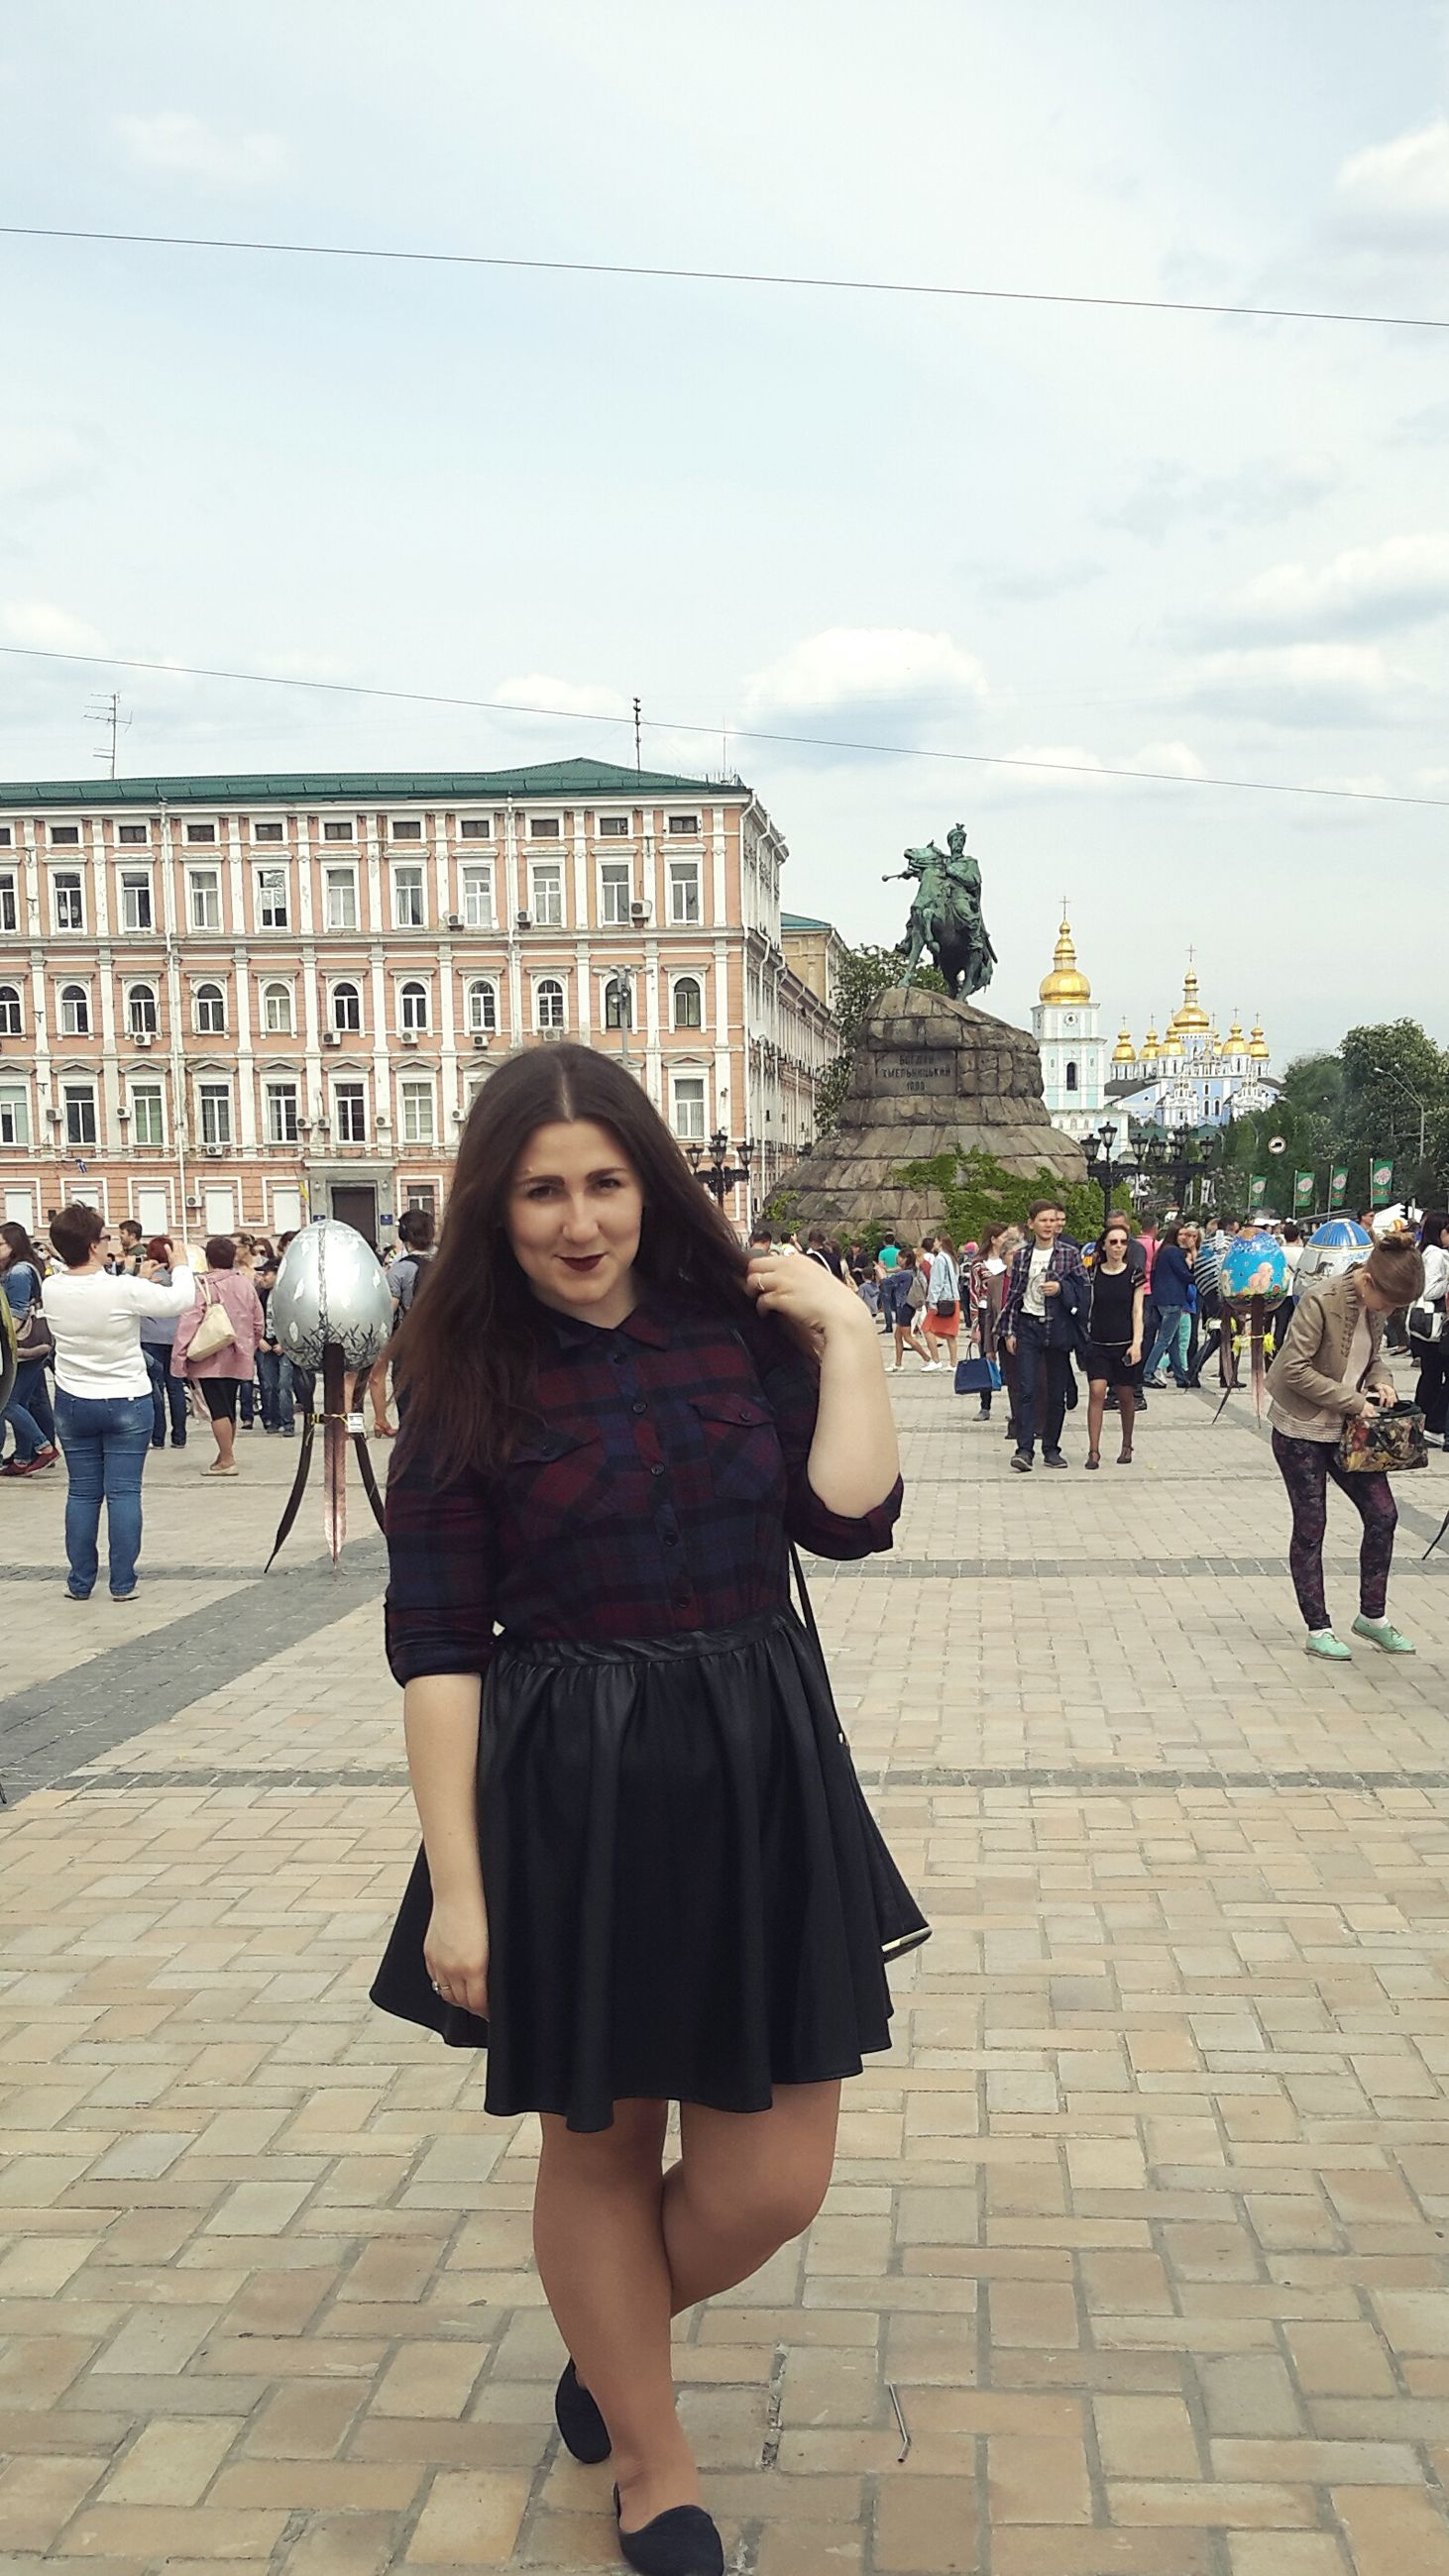 standing, architecture, person, leisure activity, lifestyles, built structure, building exterior, portrait, casual clothing, young women, smiling, full length, city, front view, looking at camera, long hair, sky, in front of, young adult, day, medium-length hair, footpath, vacations, tourism, weekend activities